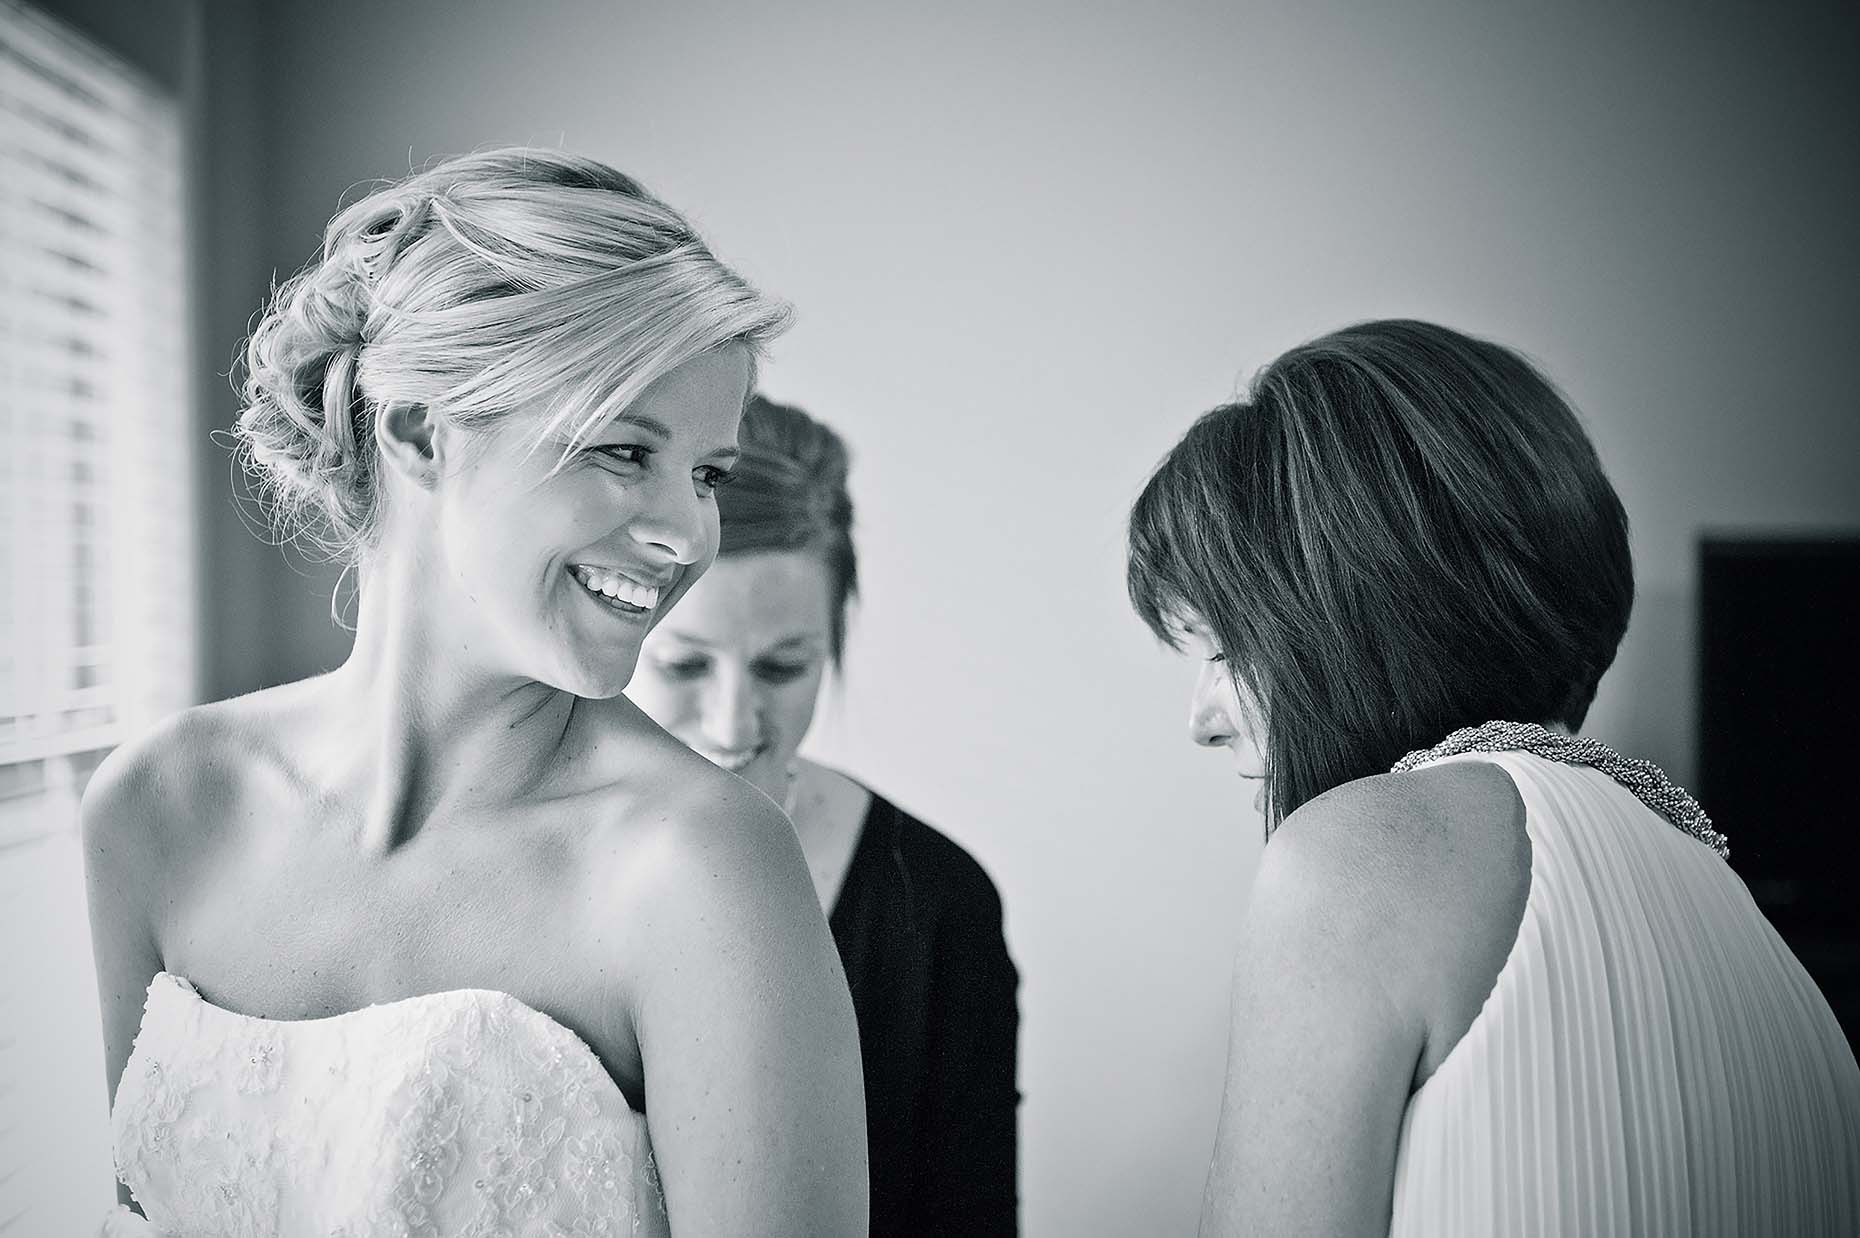 beautiful-blonde-bride-smiling-wedding-day-mono-branson-missouri-21